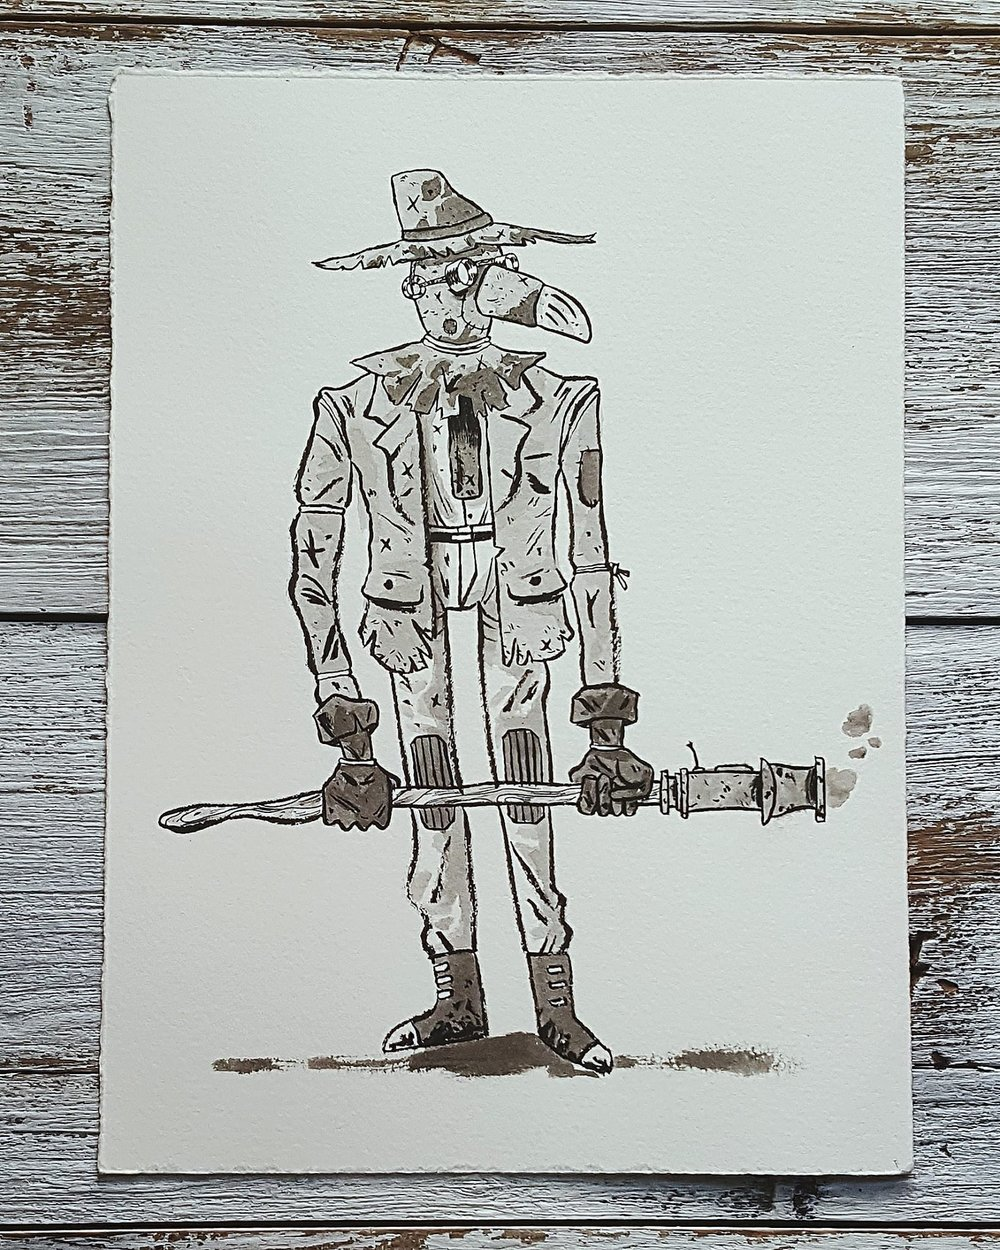 A Knight a Day No. 3, Scarecrow Rifleman - An enchanted, hay-filled puppet that farmers use to protect their crops and property from animals and raiders.